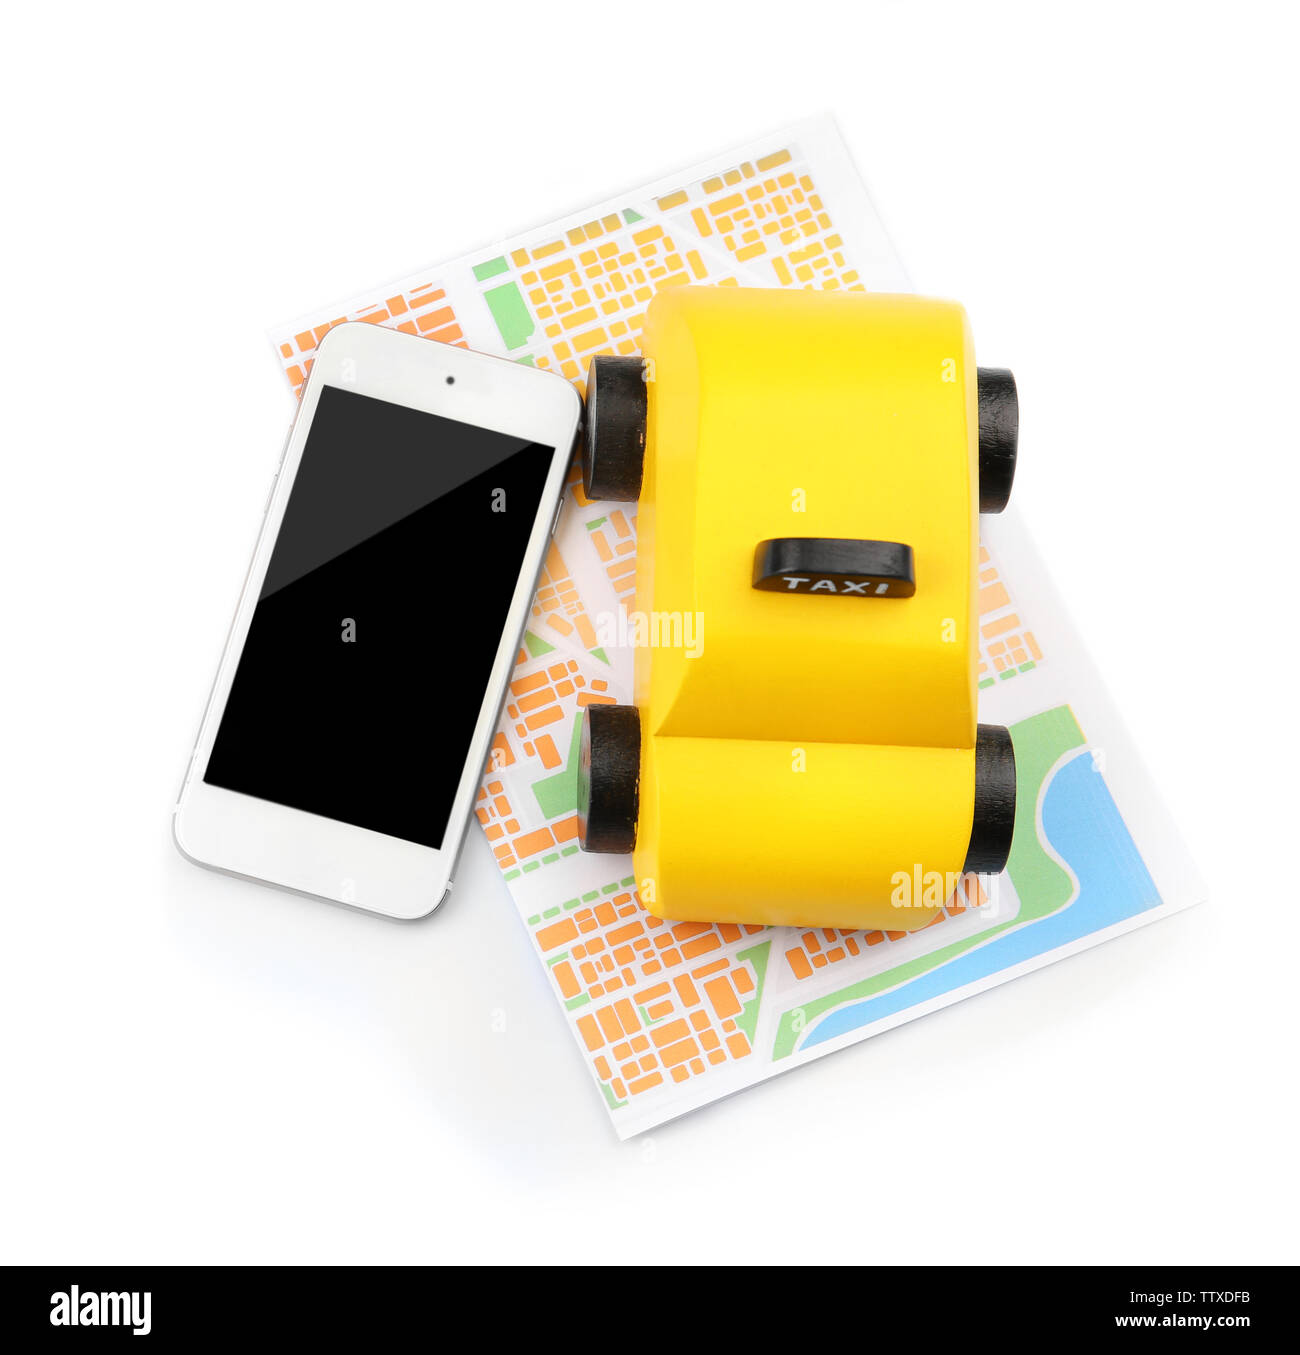 Yellow toy taxi, map and smartphone on white background - Stock Image